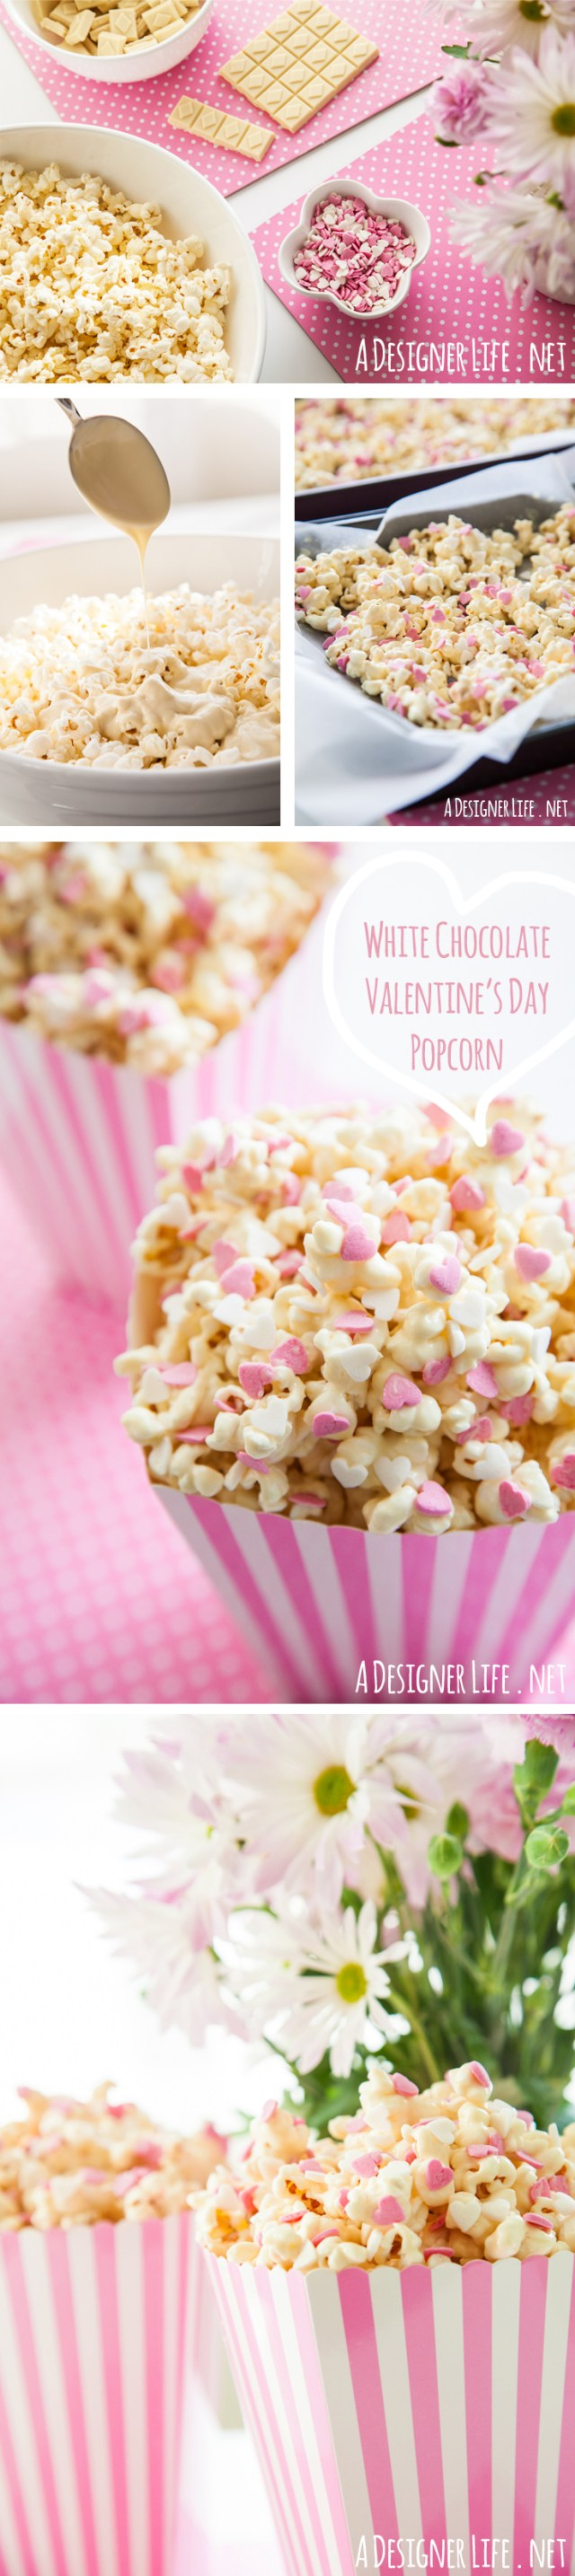 White Chocolate Valentine's Day Popcorn with Heart Sprinkles! Last minute Valentines Day recipe ideas